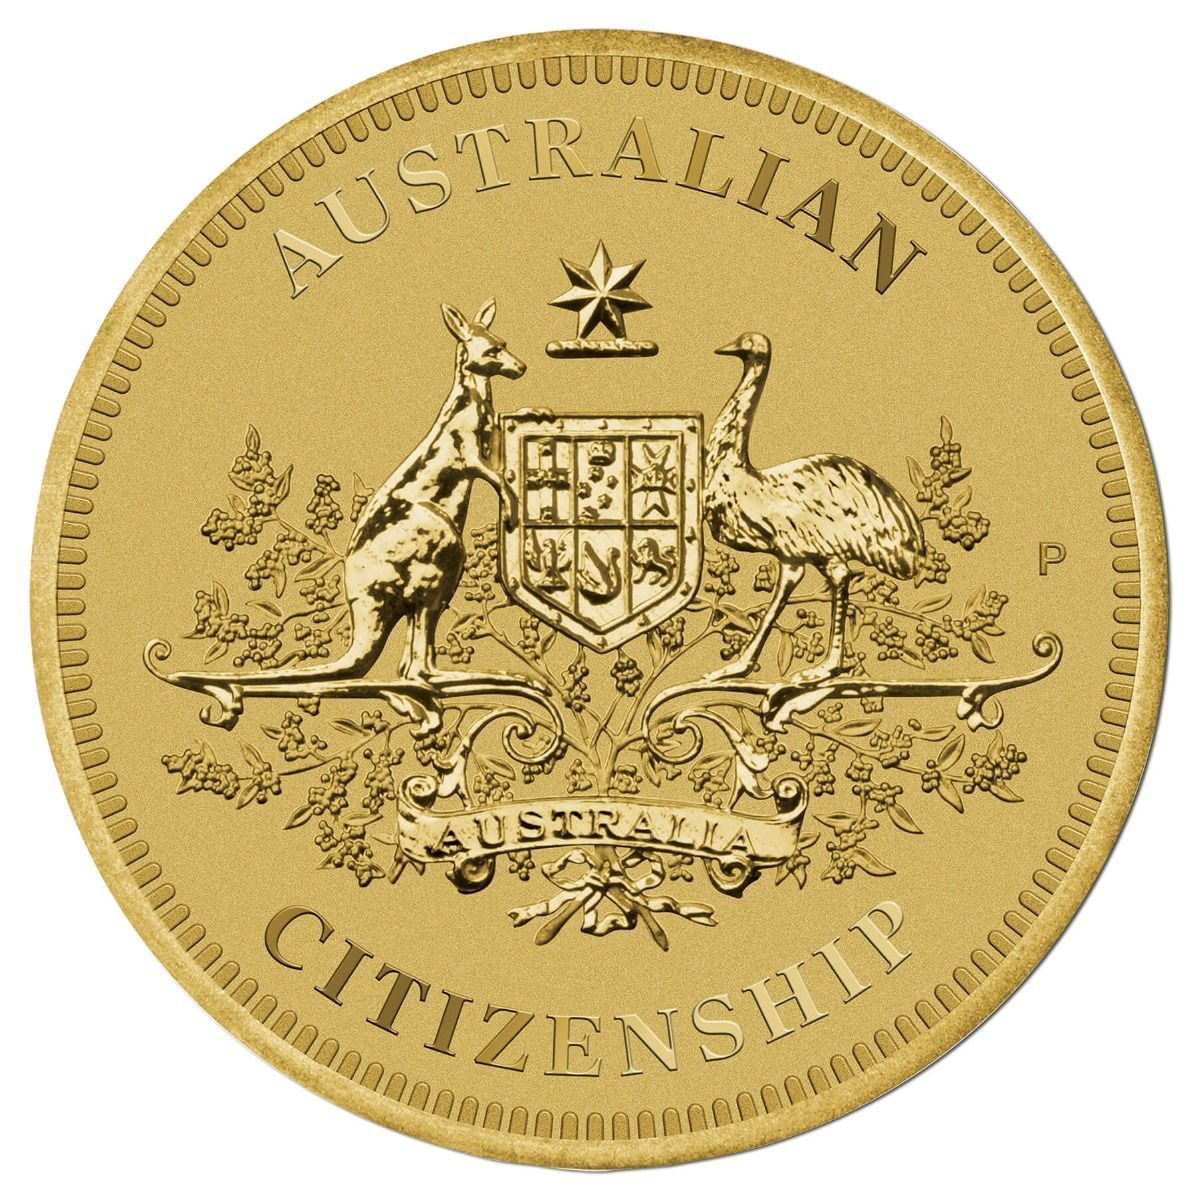 2019 $1 Australian Citizenship Coin